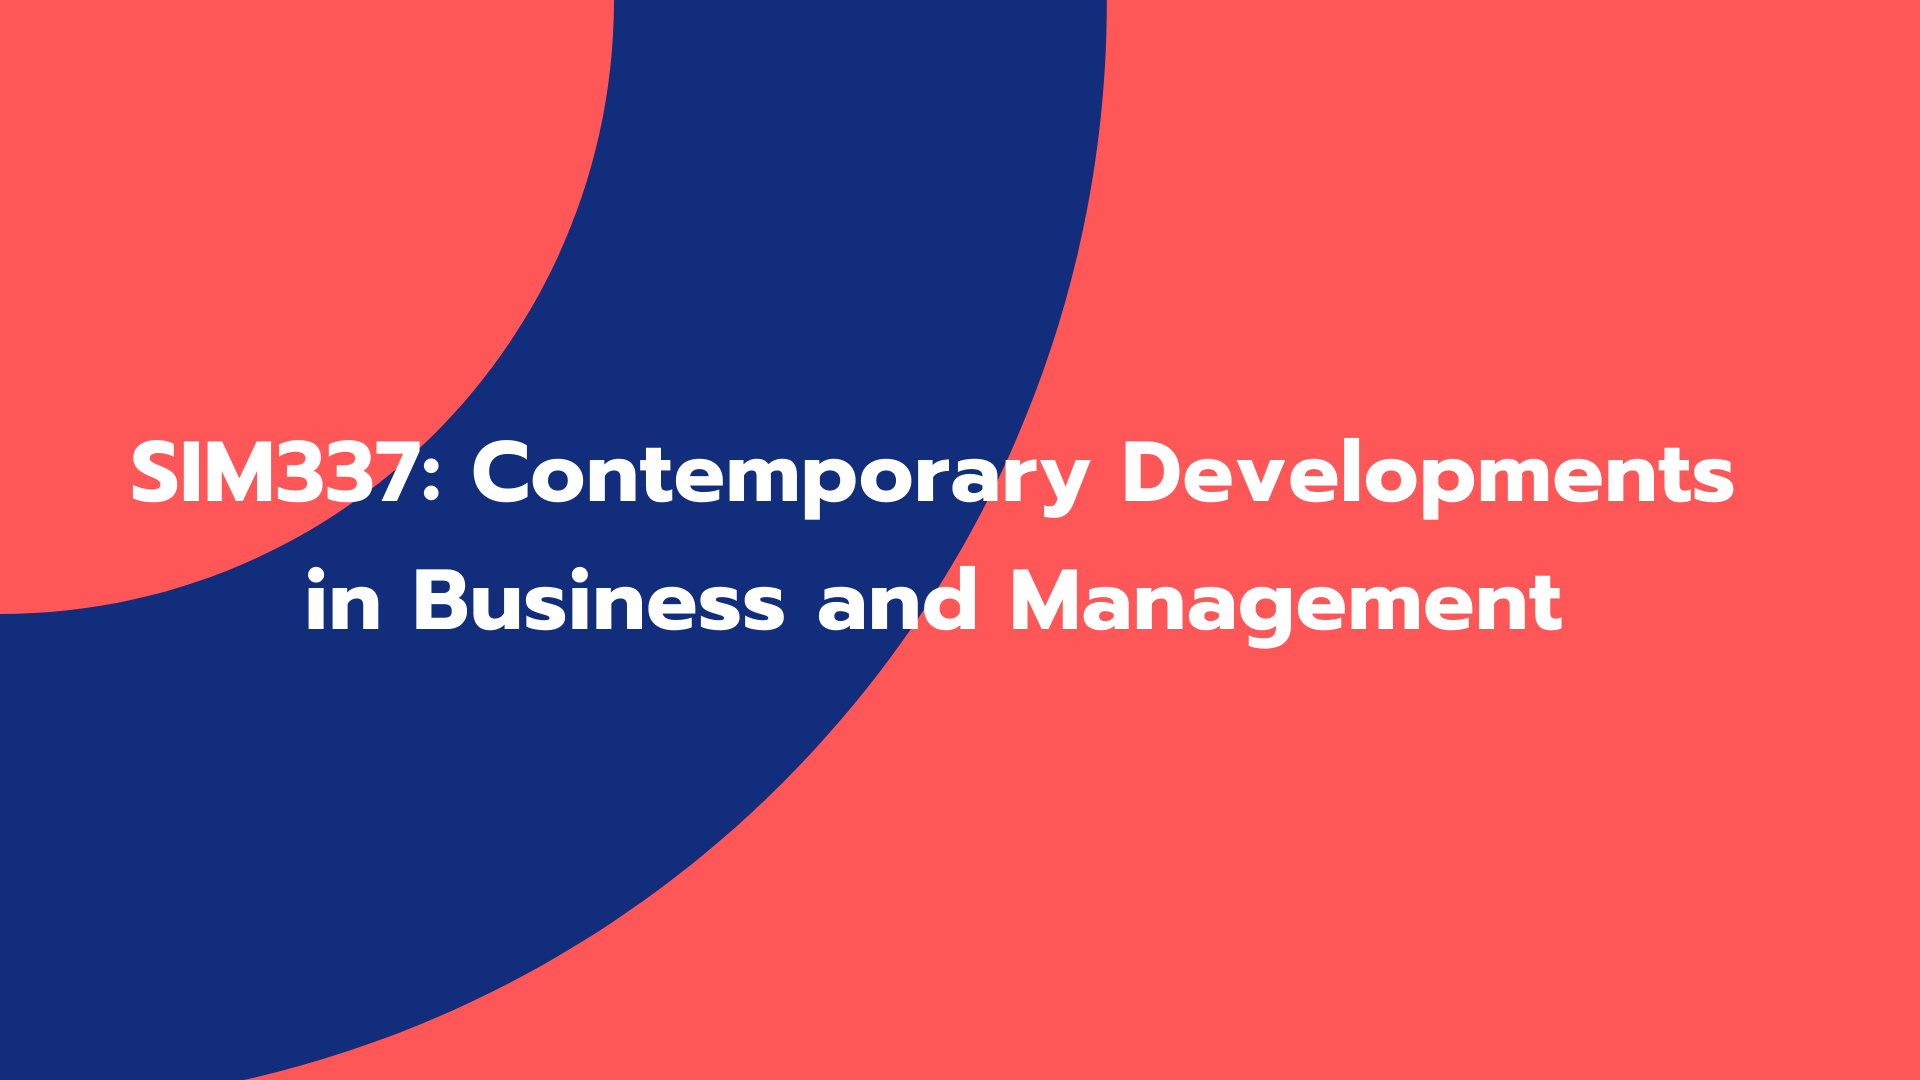 SIM337: Contemporary Developments in Business and Management